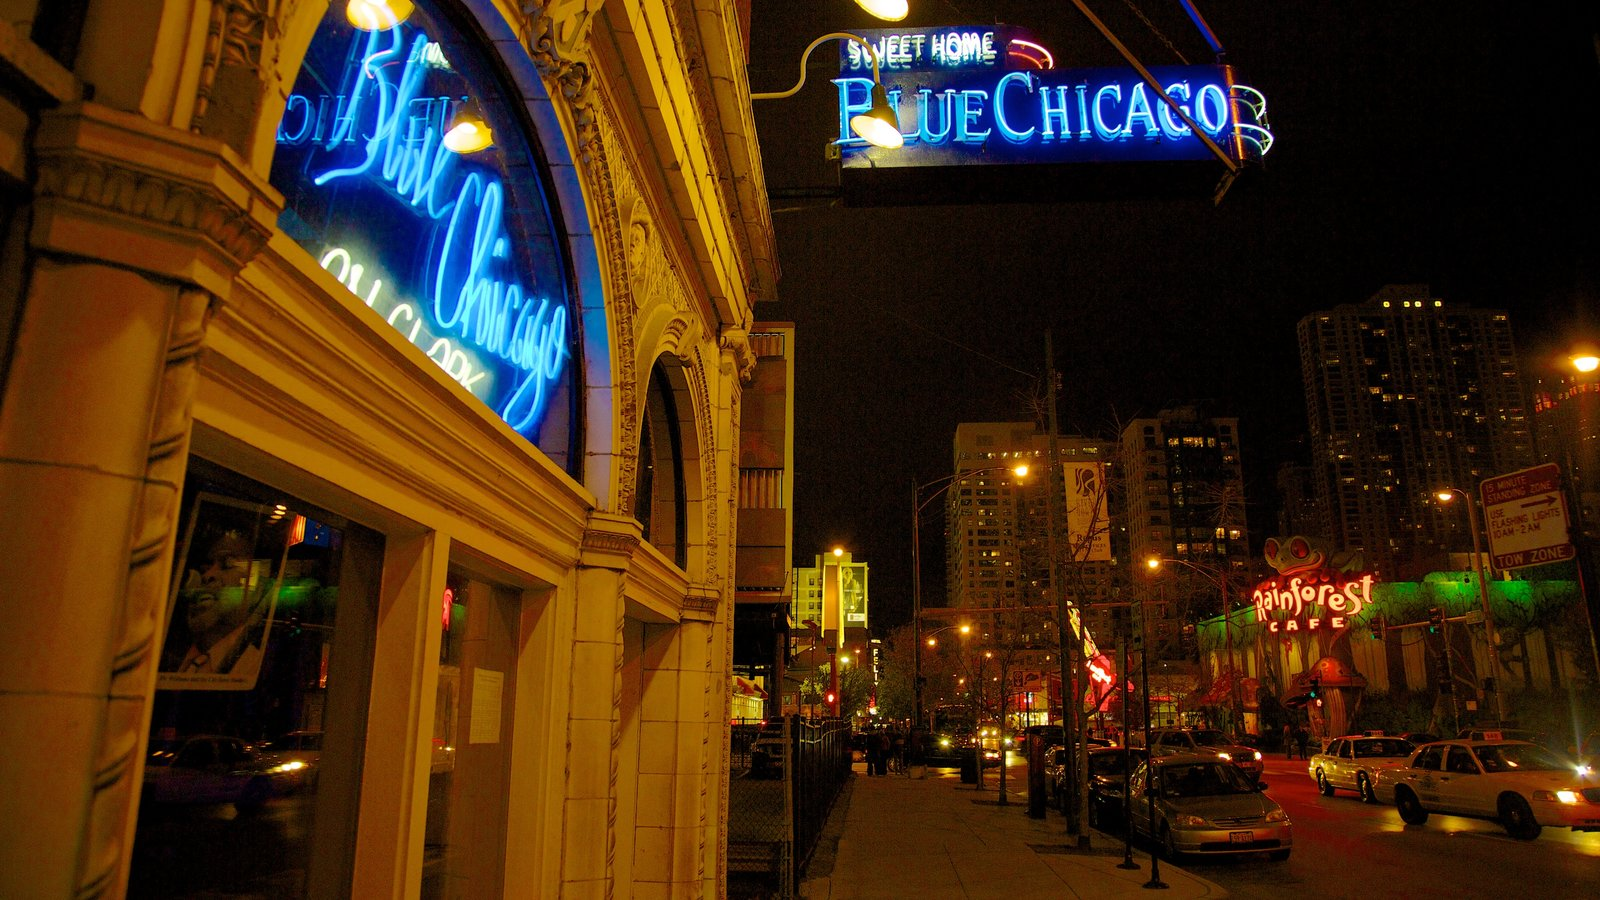 Magnificent Mile - River North showing night scenes, a city and signage